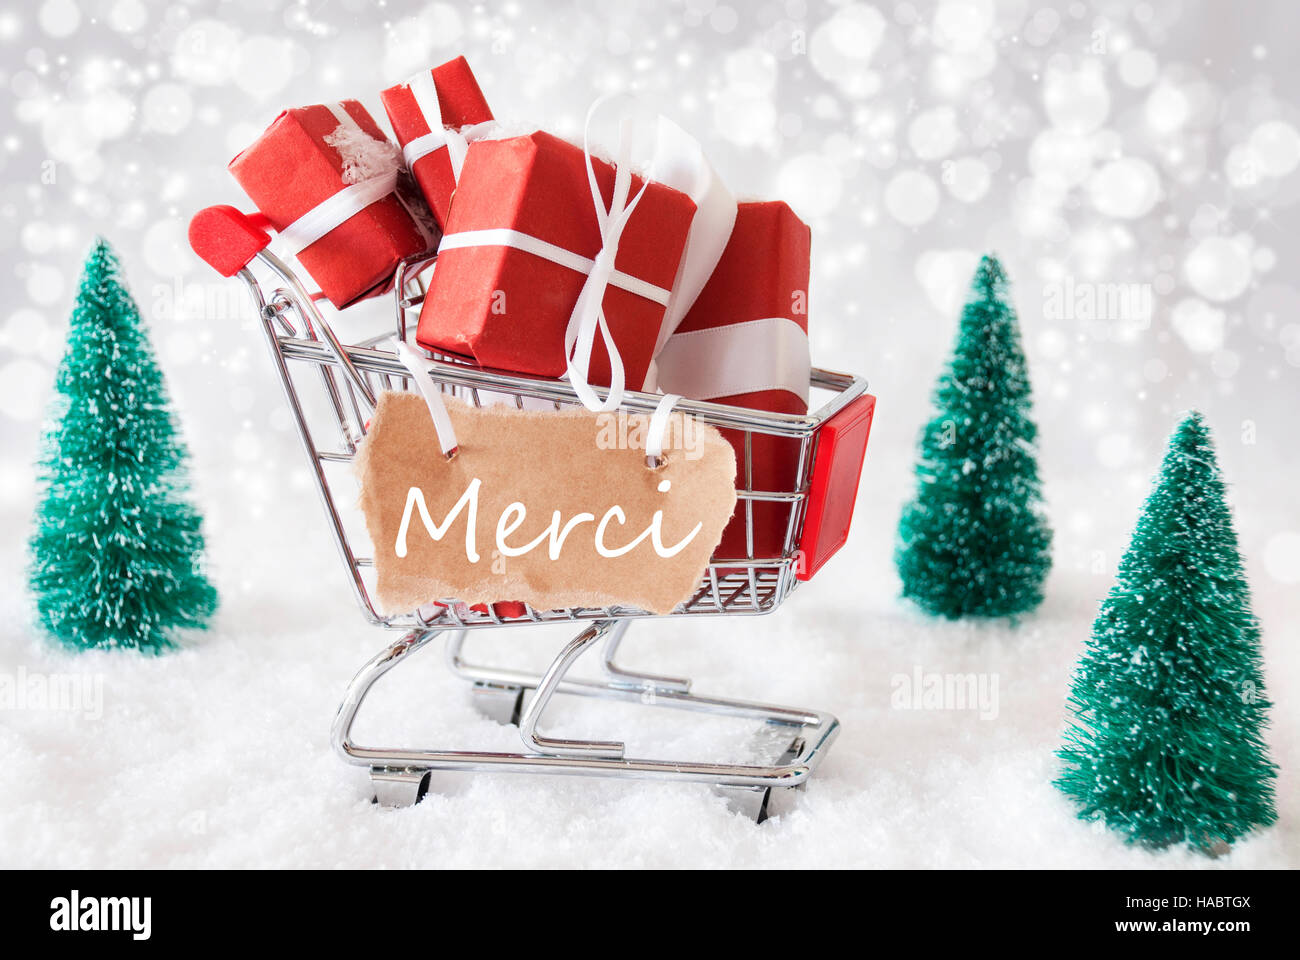 Trolly With Christmas Gifts And Snow, Merci Means Thank You Stock ...